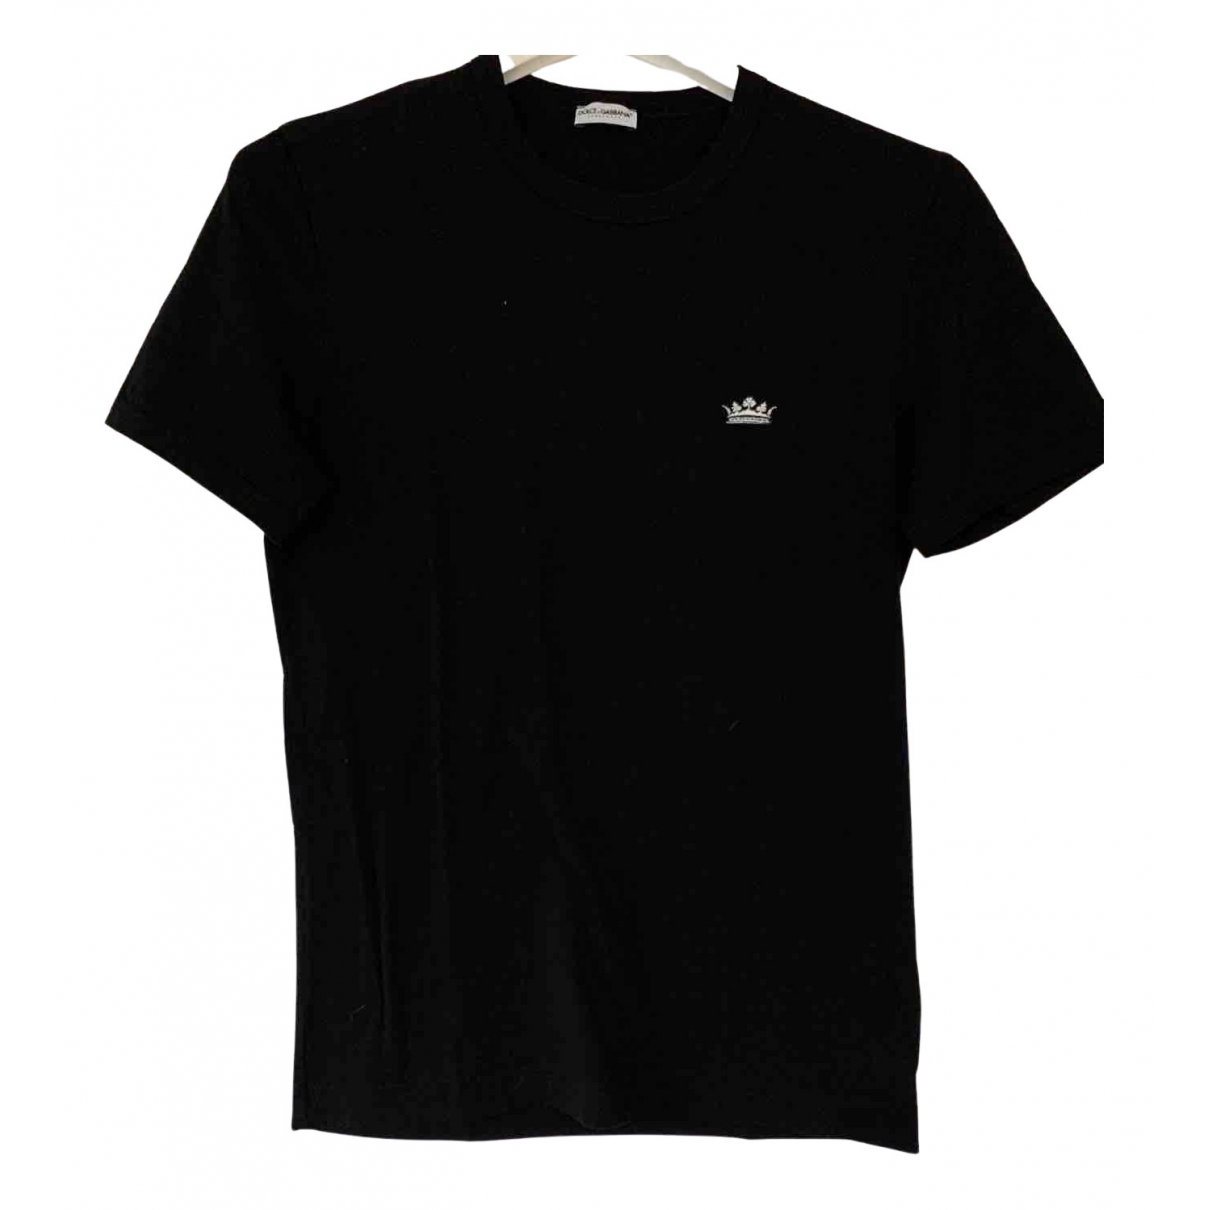 Dolce & Gabbana \N Black Cotton T-shirts for Men S International